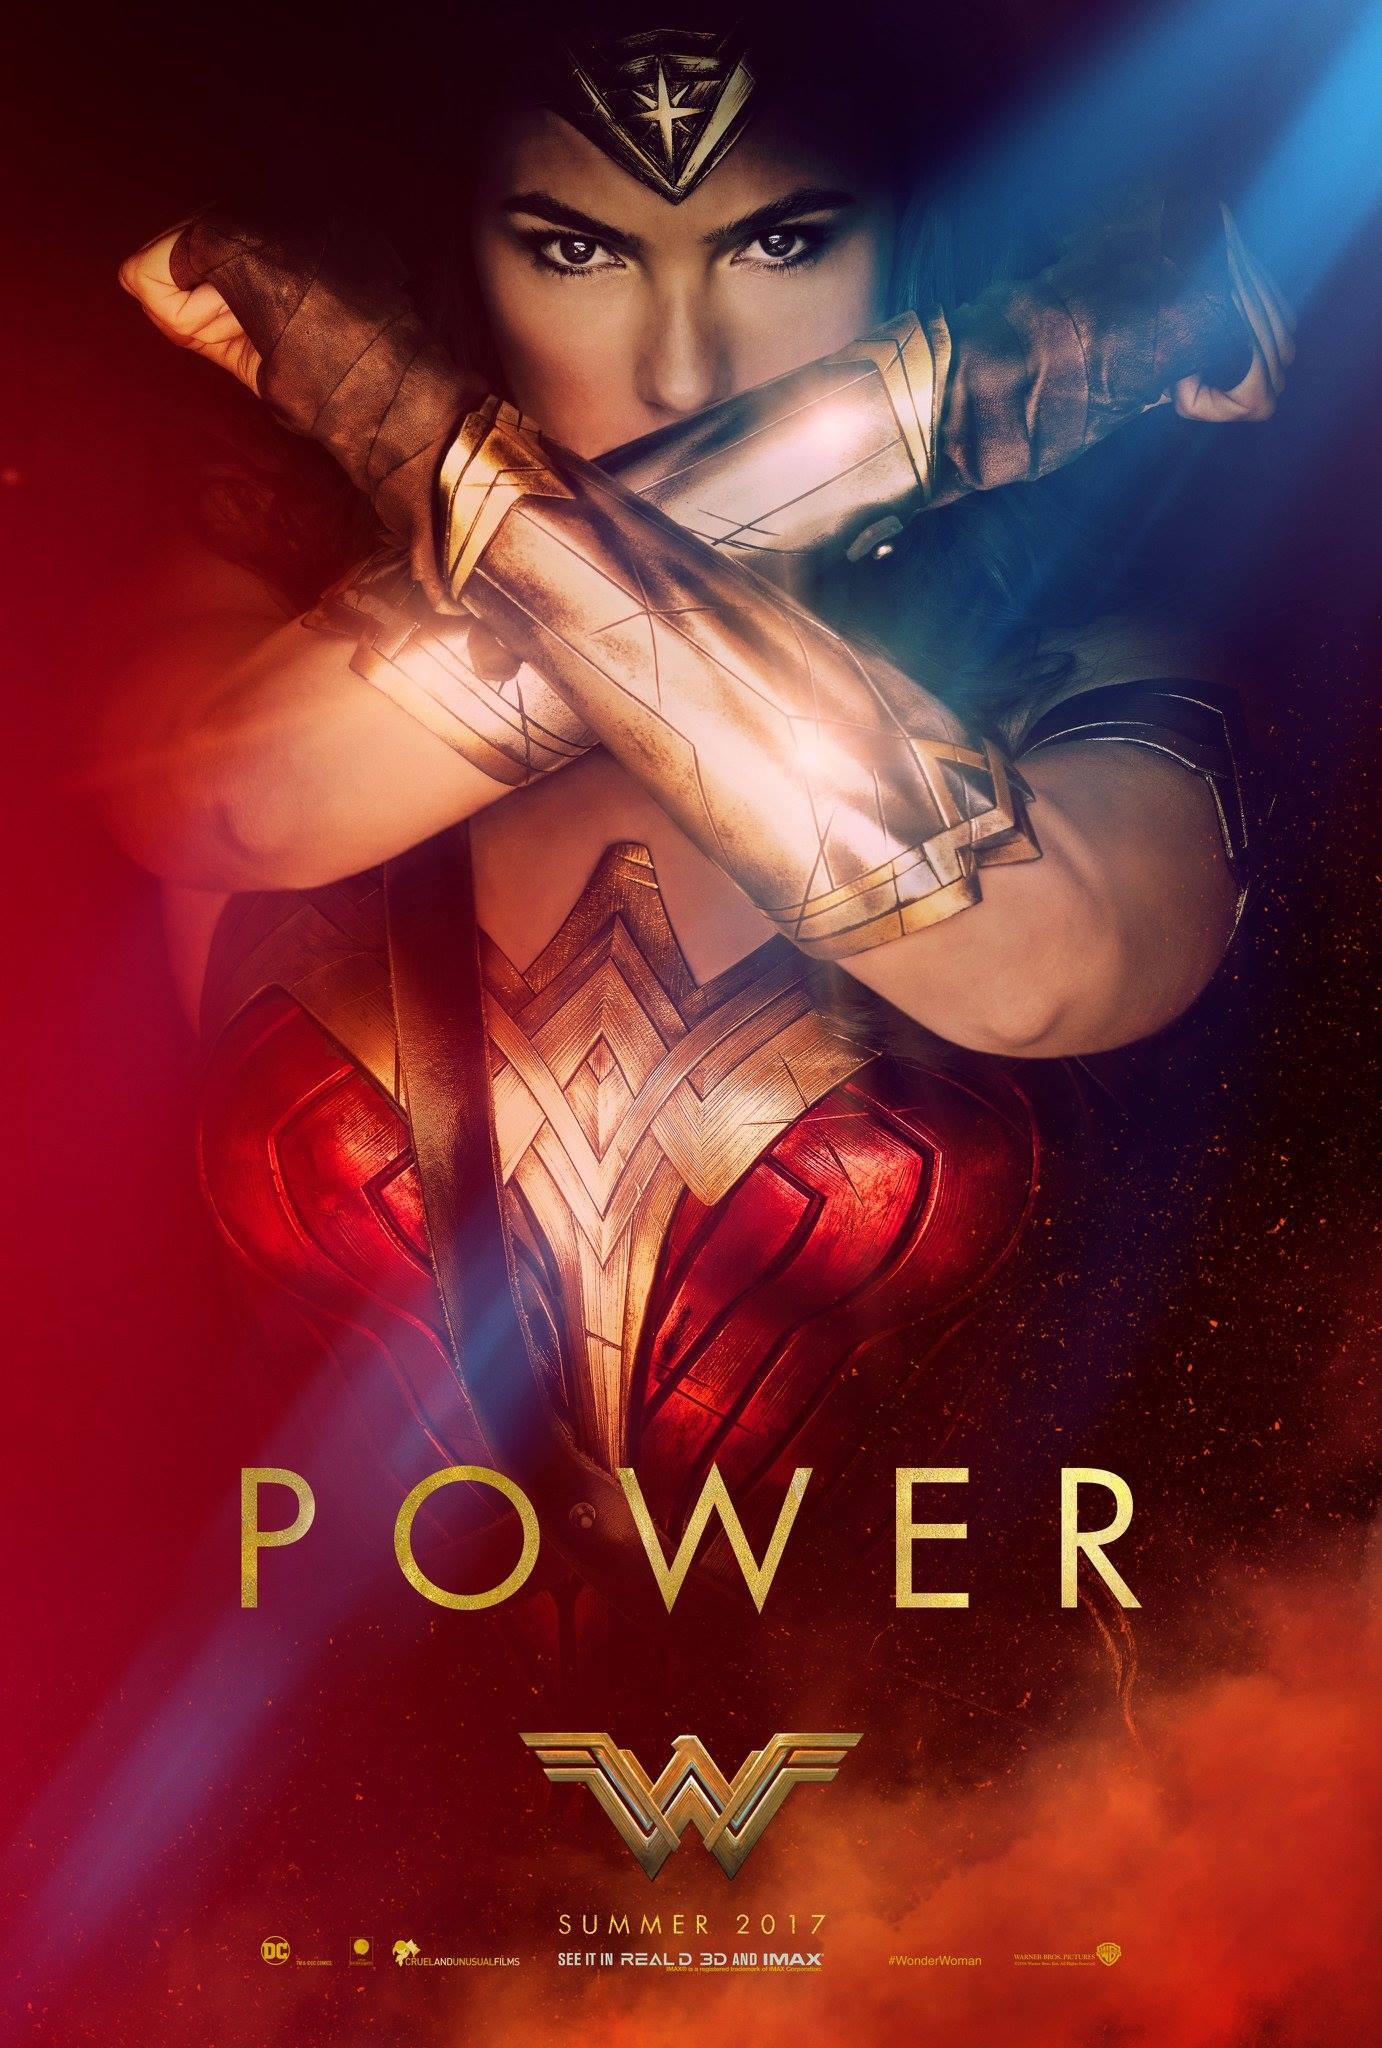 wonder woman Ver pelicula wonder woman (2017) online gratis en audio español y latino + descargar película completa en hd720p antes de ser wonder woman, era dia.